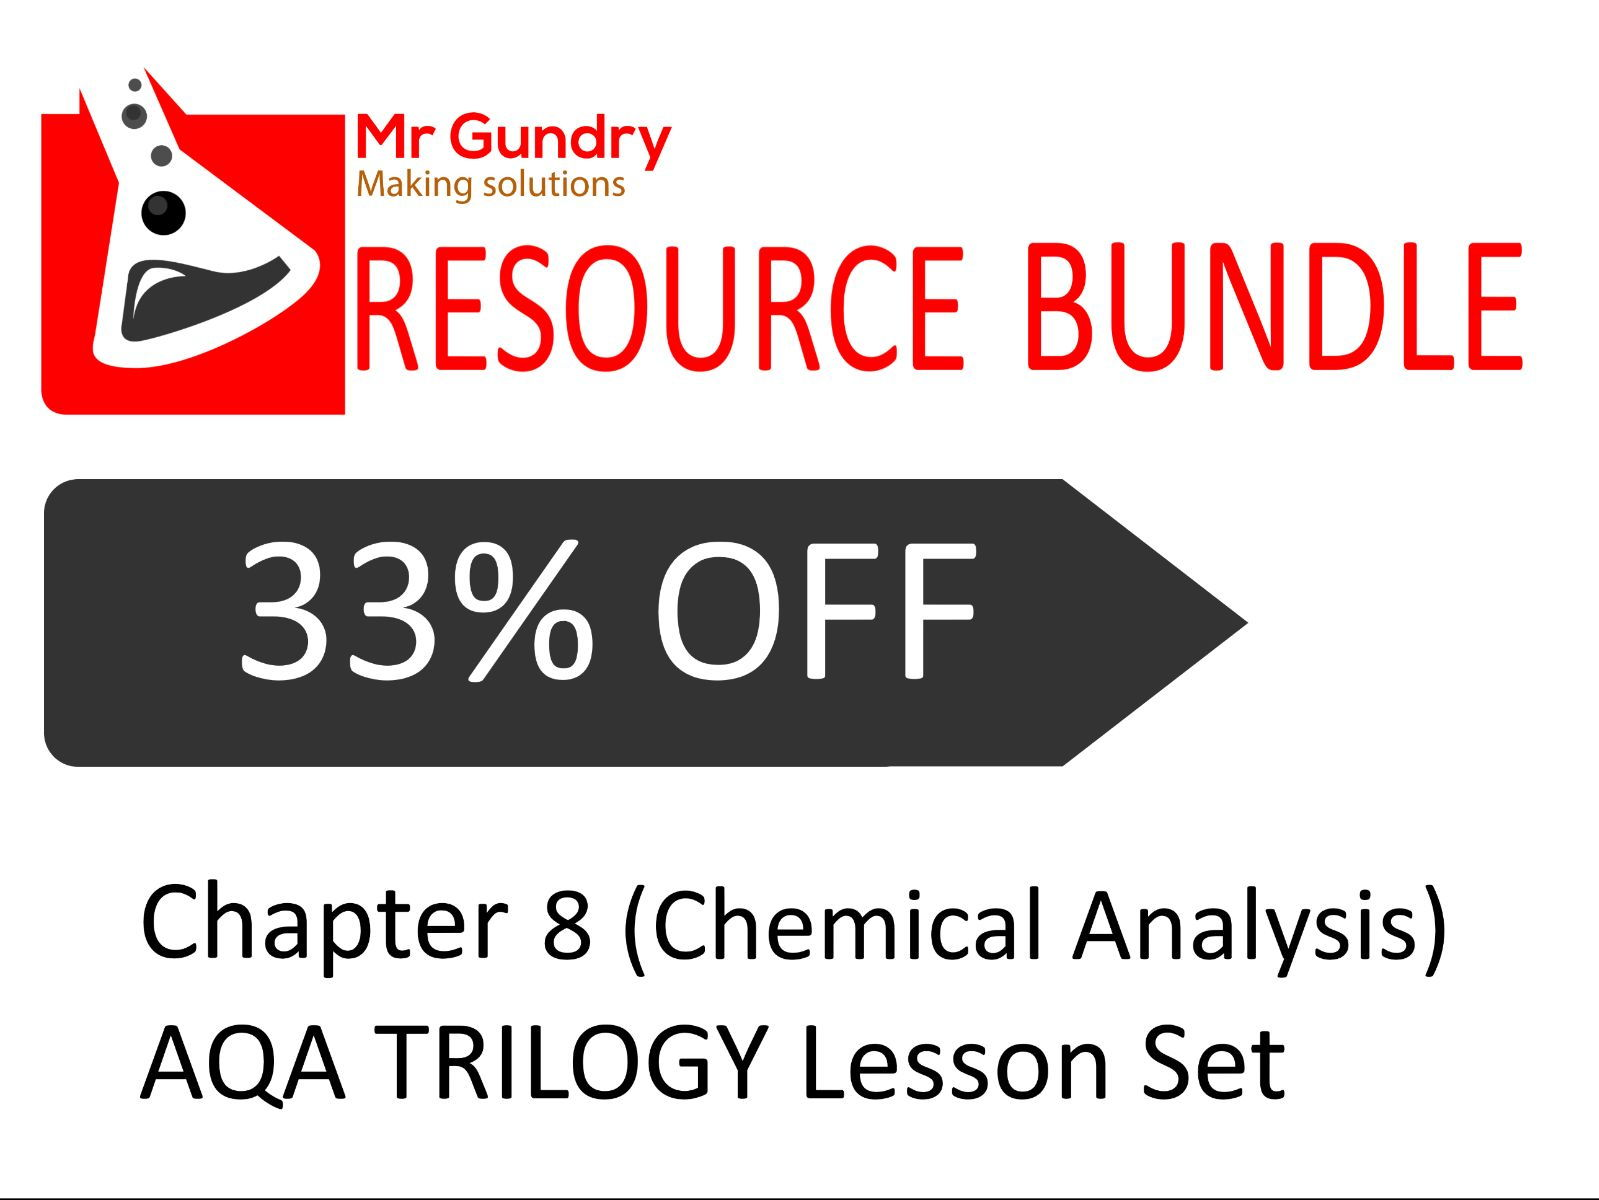 AQA (Chemical Analysis) TRILOGY Lesson Set